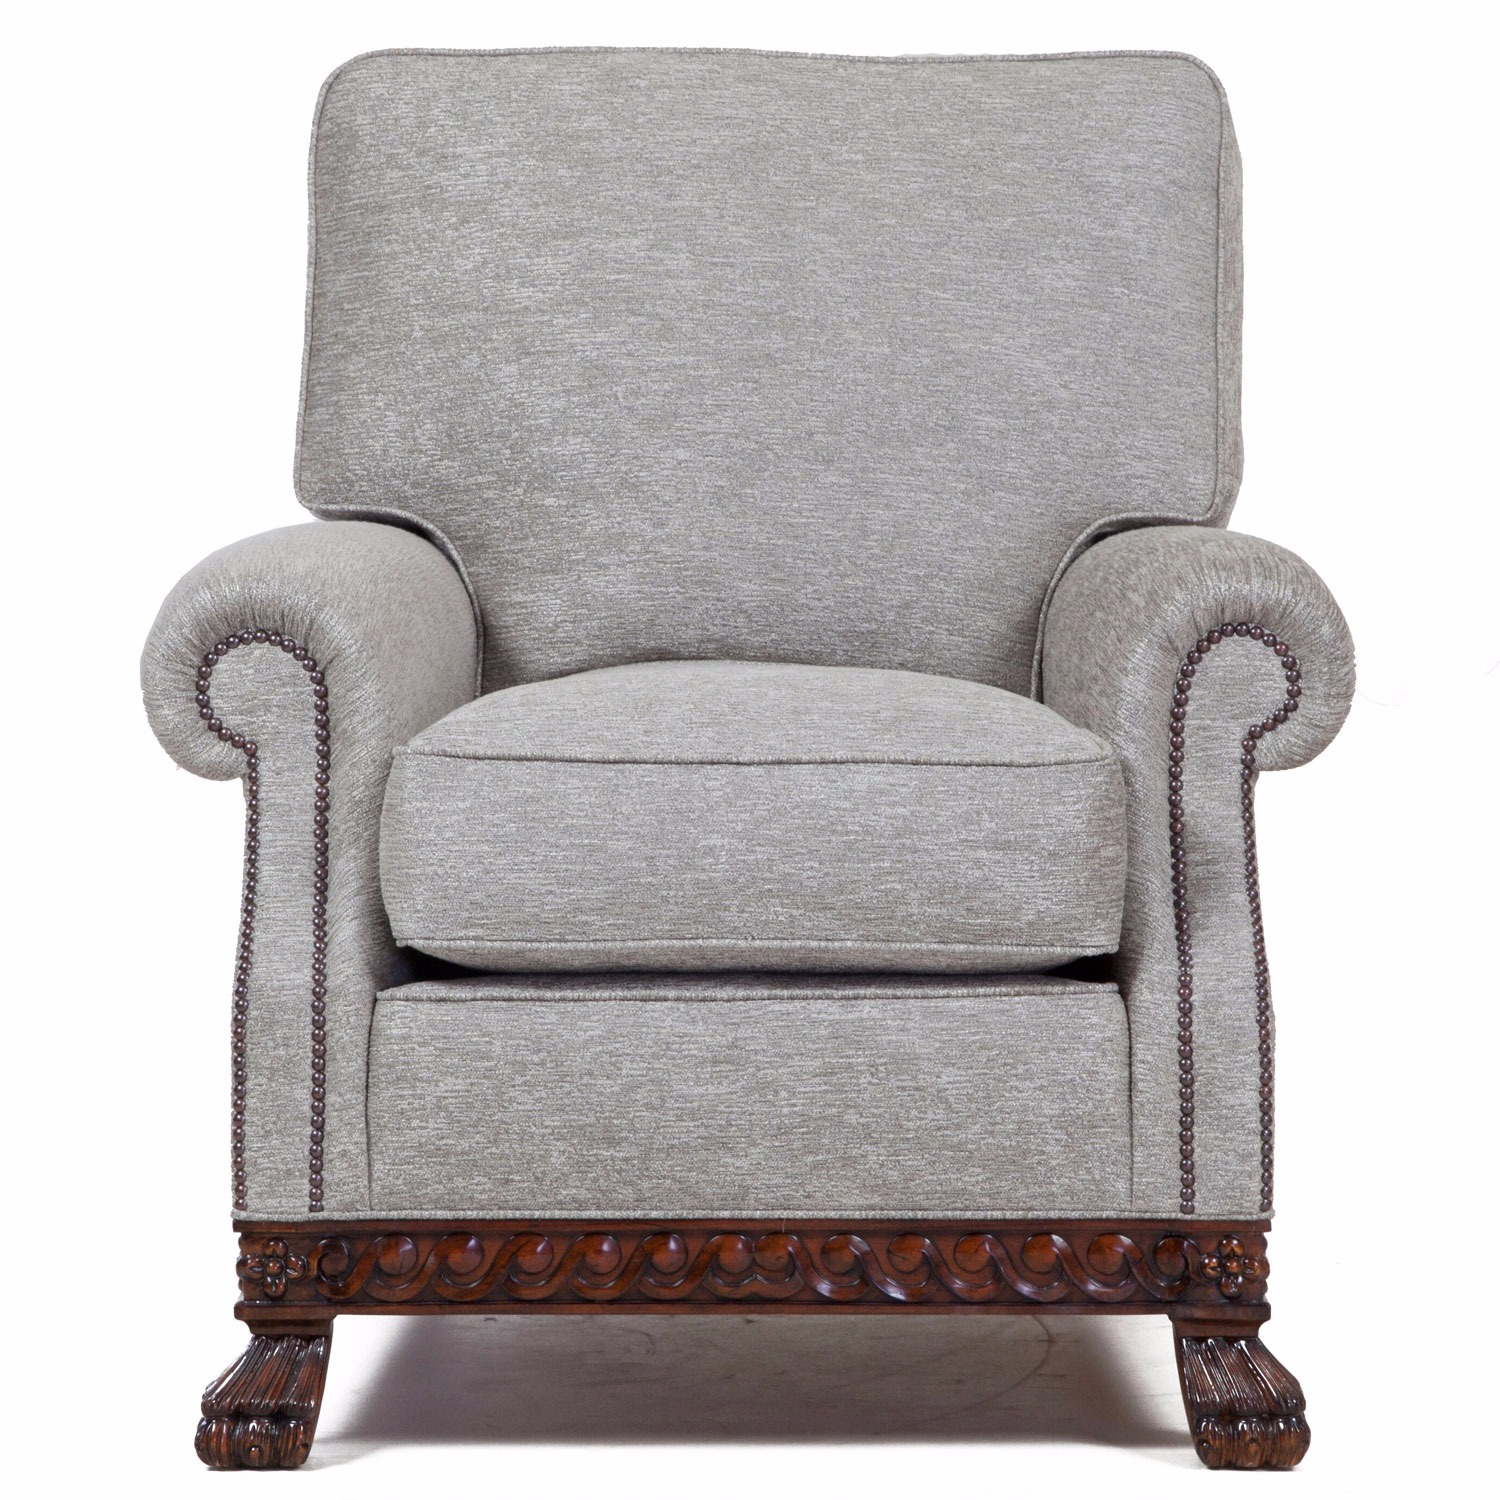 Dartington chair in a platinum weave